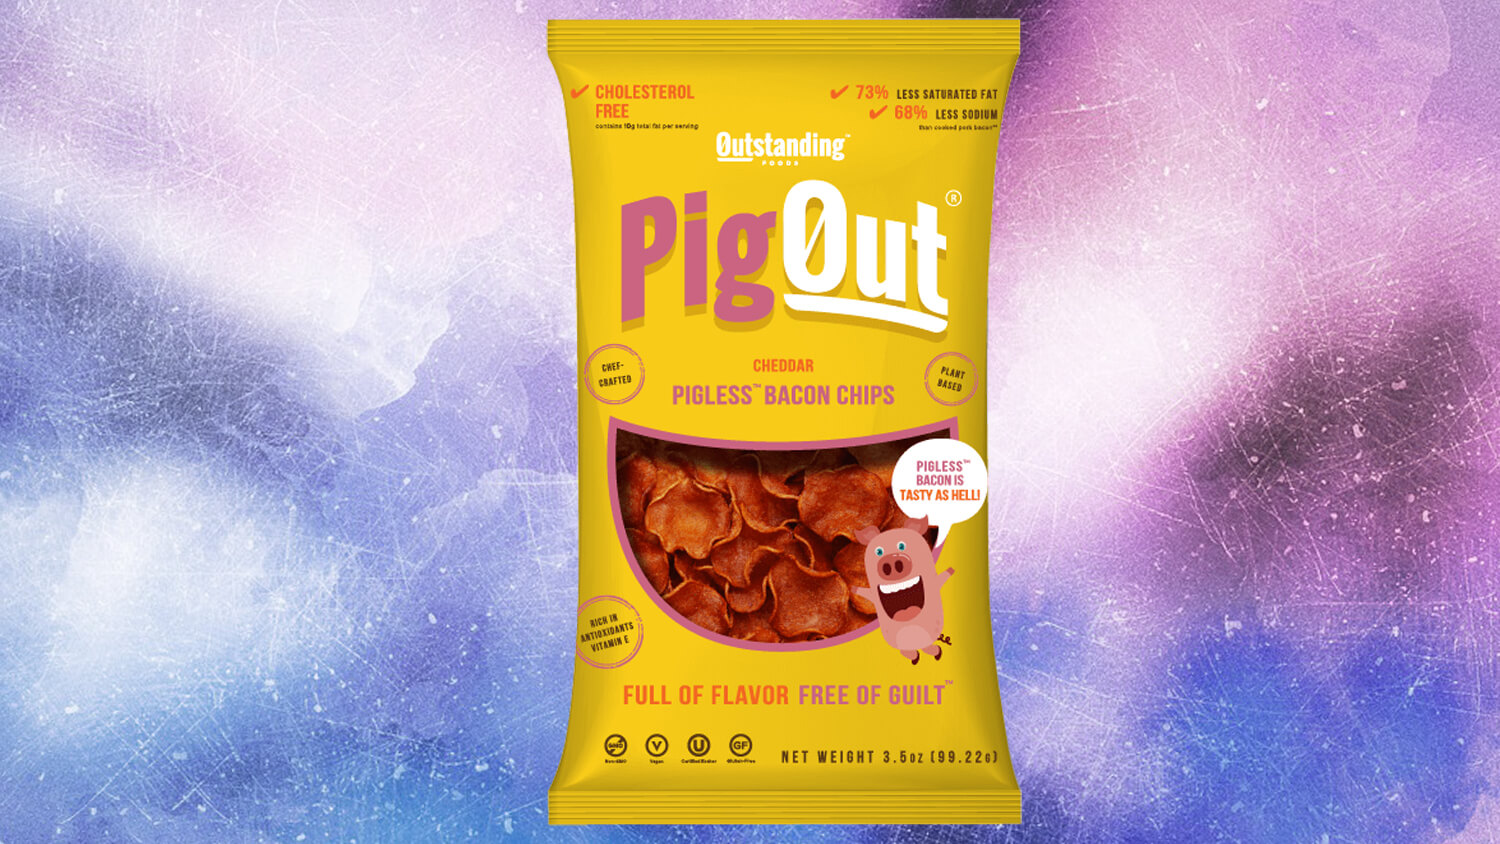 Vegan Pig Out! Mushroom Bacon Chips and Snacklin's Pork-Free Rinds Will Be the Hottest Snacks of 2019